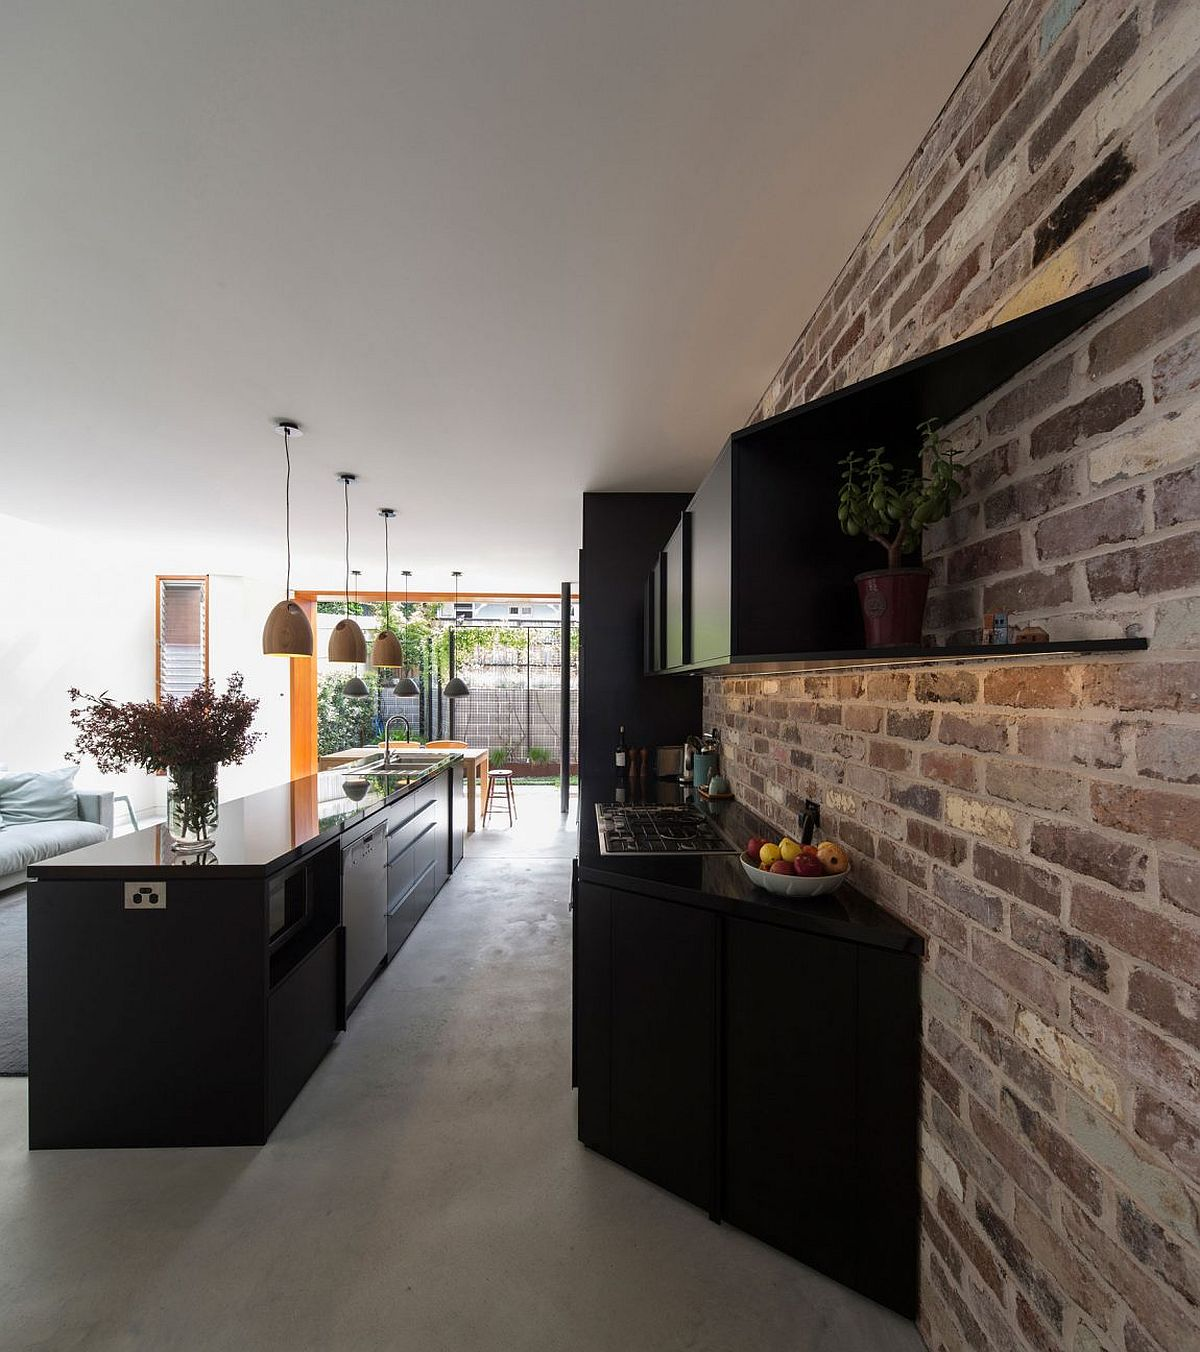 Glossy black kitchen cabinets coupled with exposed brick wall to create textural beauty